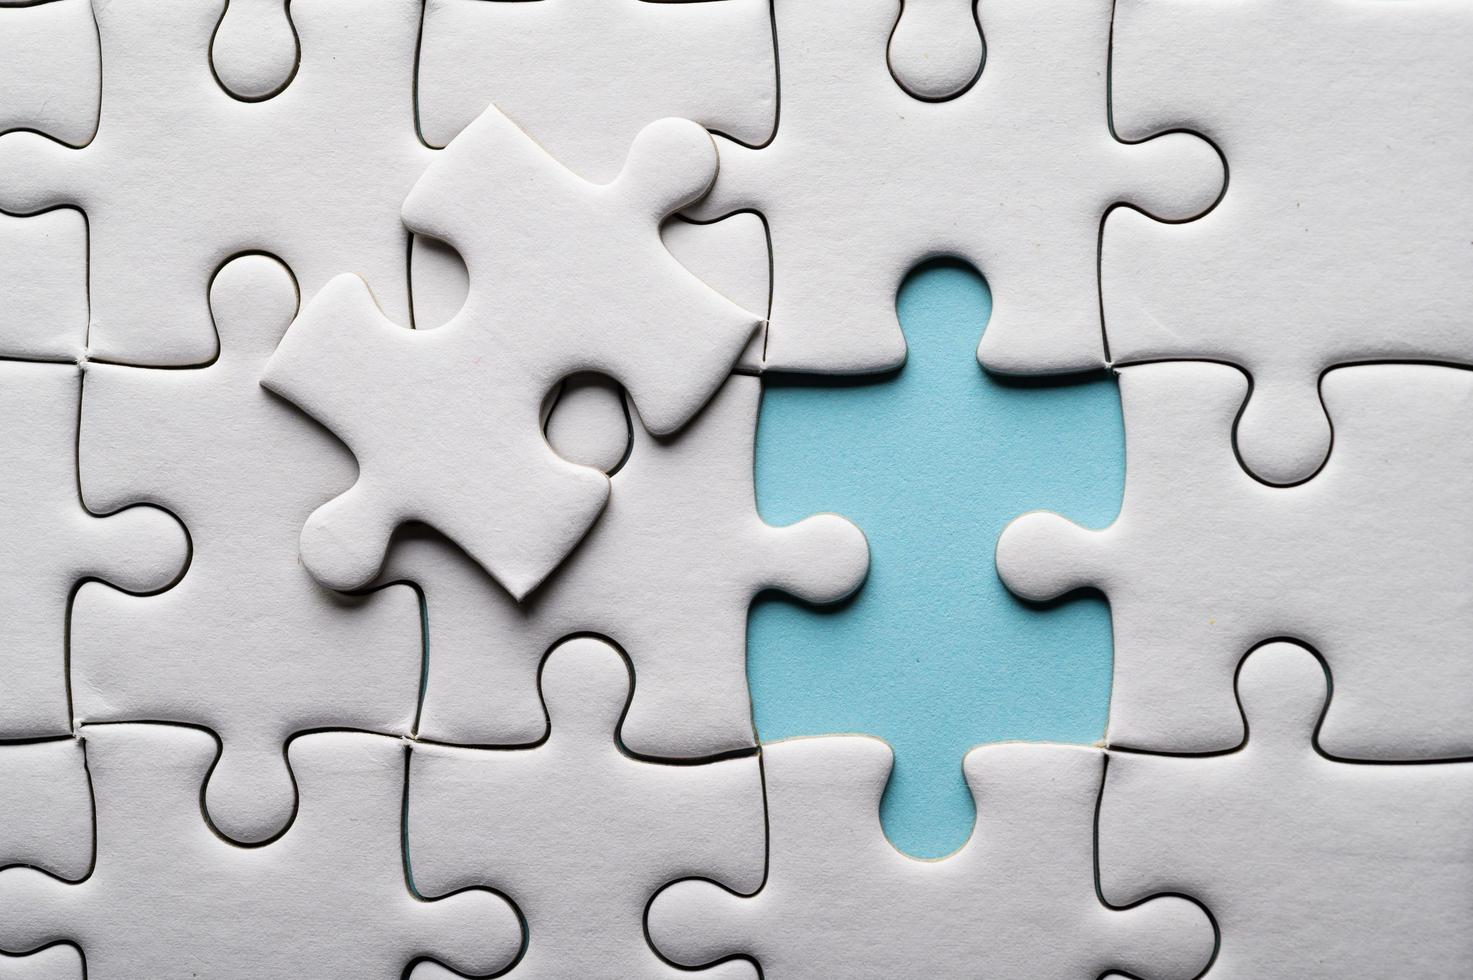 Jigsaw puzzle with a missing piece photo